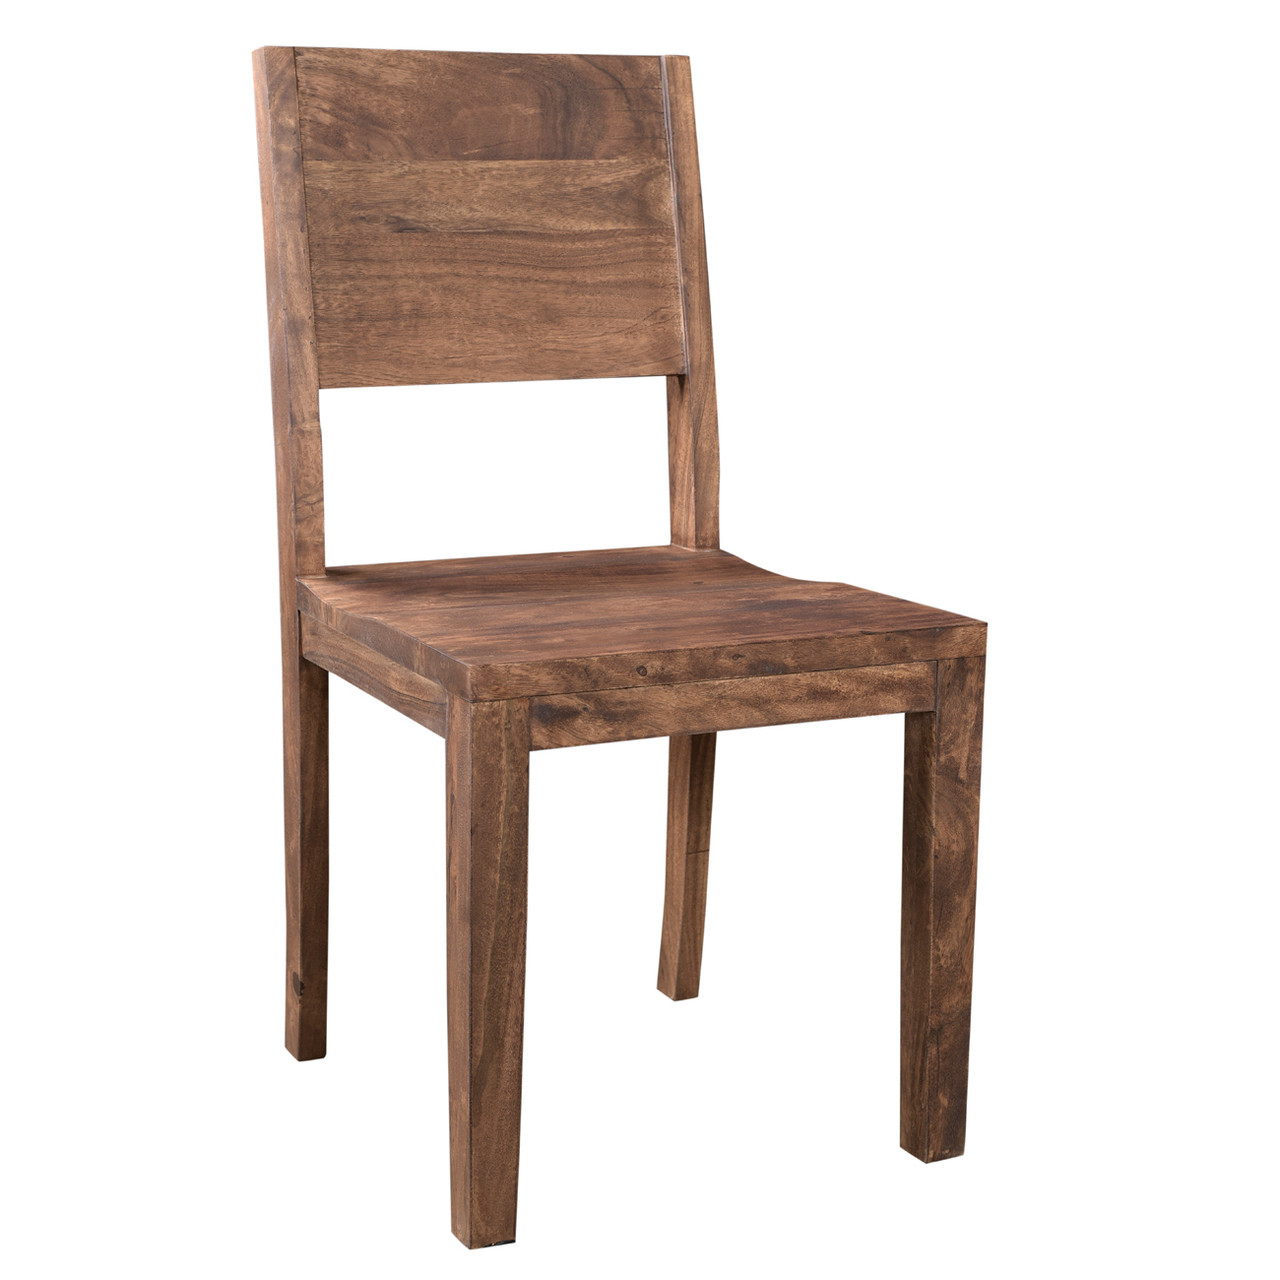 sc 1 st  Timbergirl & Dining Chairs | Rustic Texas Furniture | Timbergirl